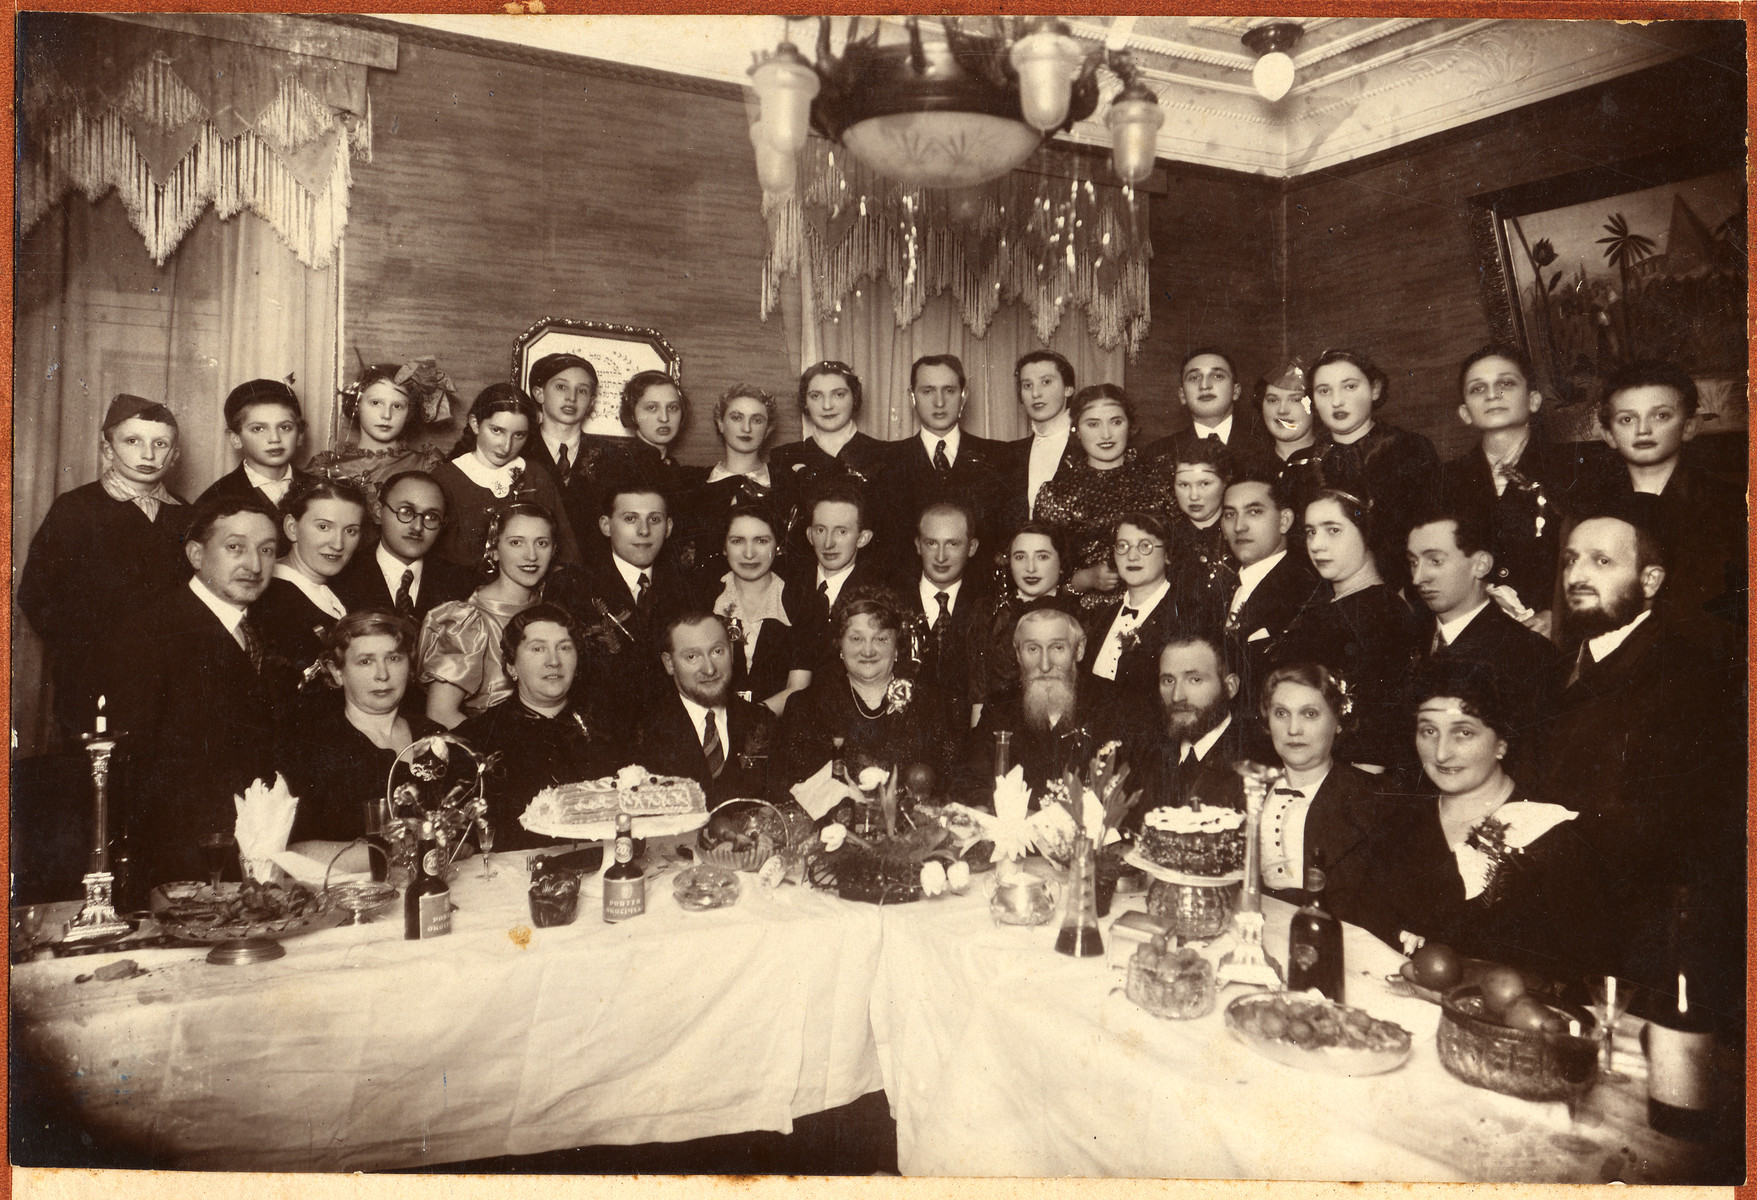 Group portrait of Jews celebrating a golden wedding anniversary.    Pictured in the center are Michuel Yidl and Brandla Krell (the donor's maternal grandparents) who were celebrating their fifteenth wedding anniversary.